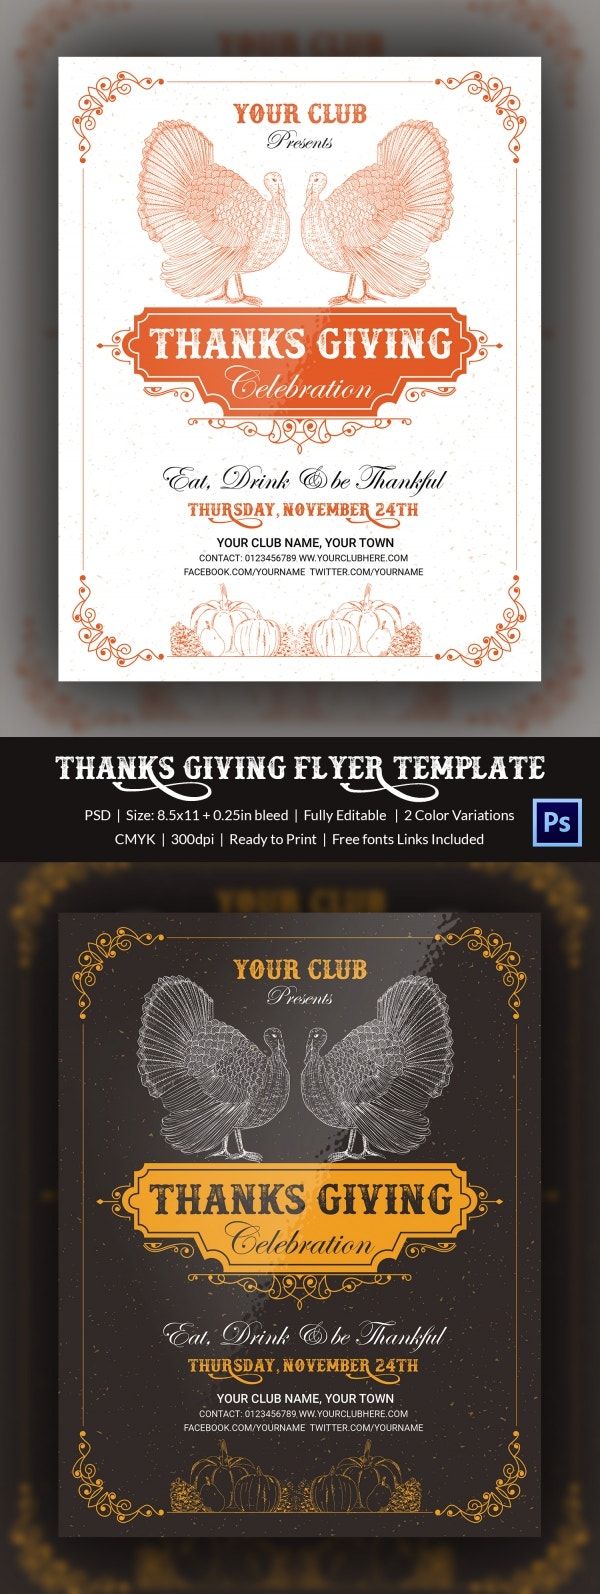 thanks giving flyer 4